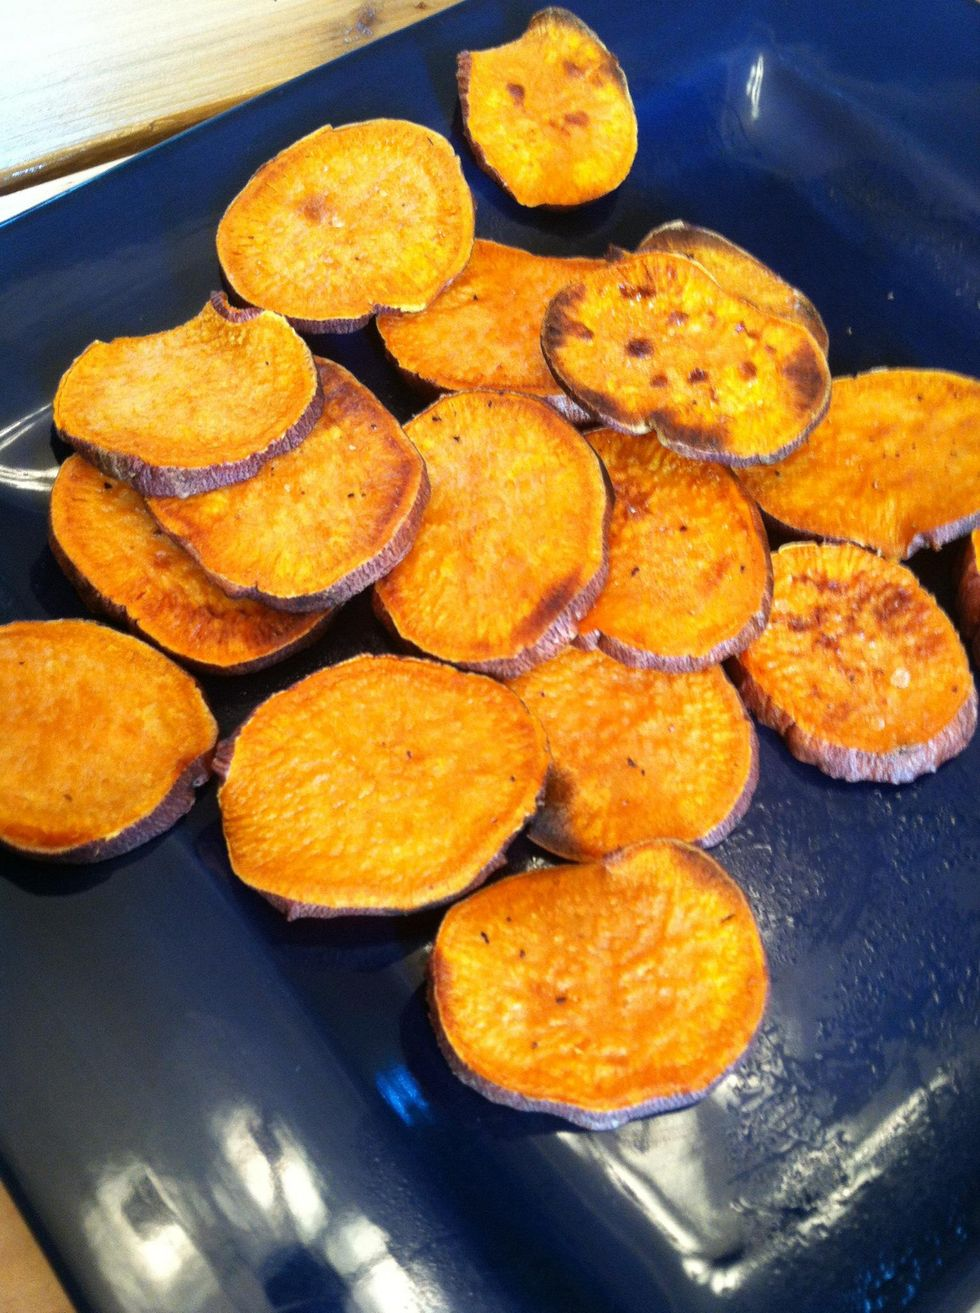 How To Make Roasted Sweet Potato Slices B C Guides